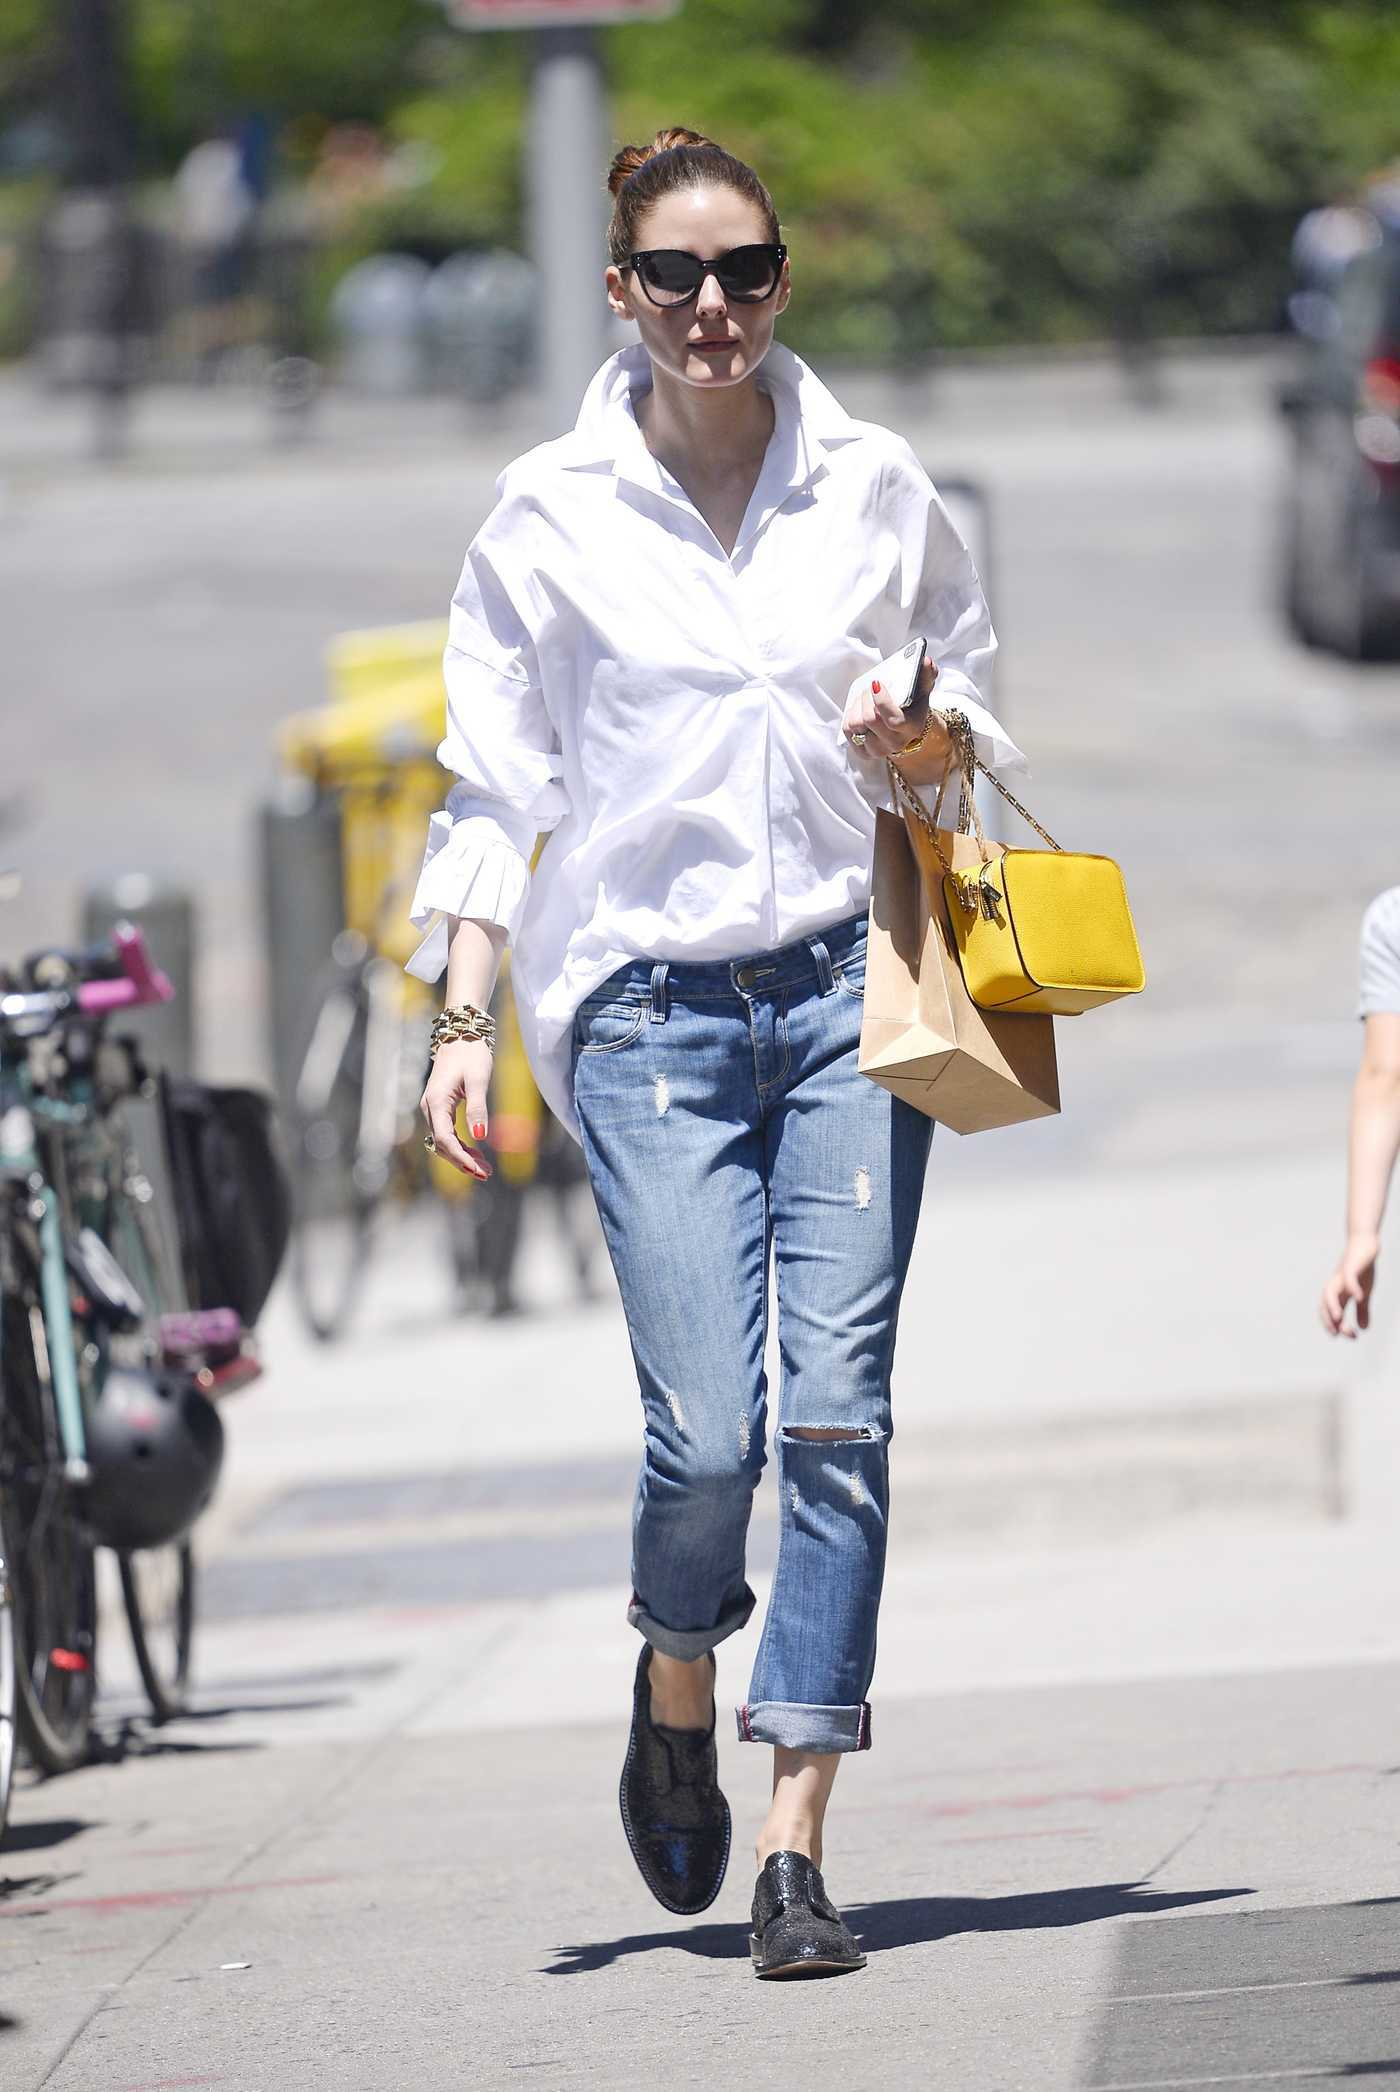 Olivia Palermo Wears a White Long-Sleeved Top and Denim Pants Out in New York 07/10/2018